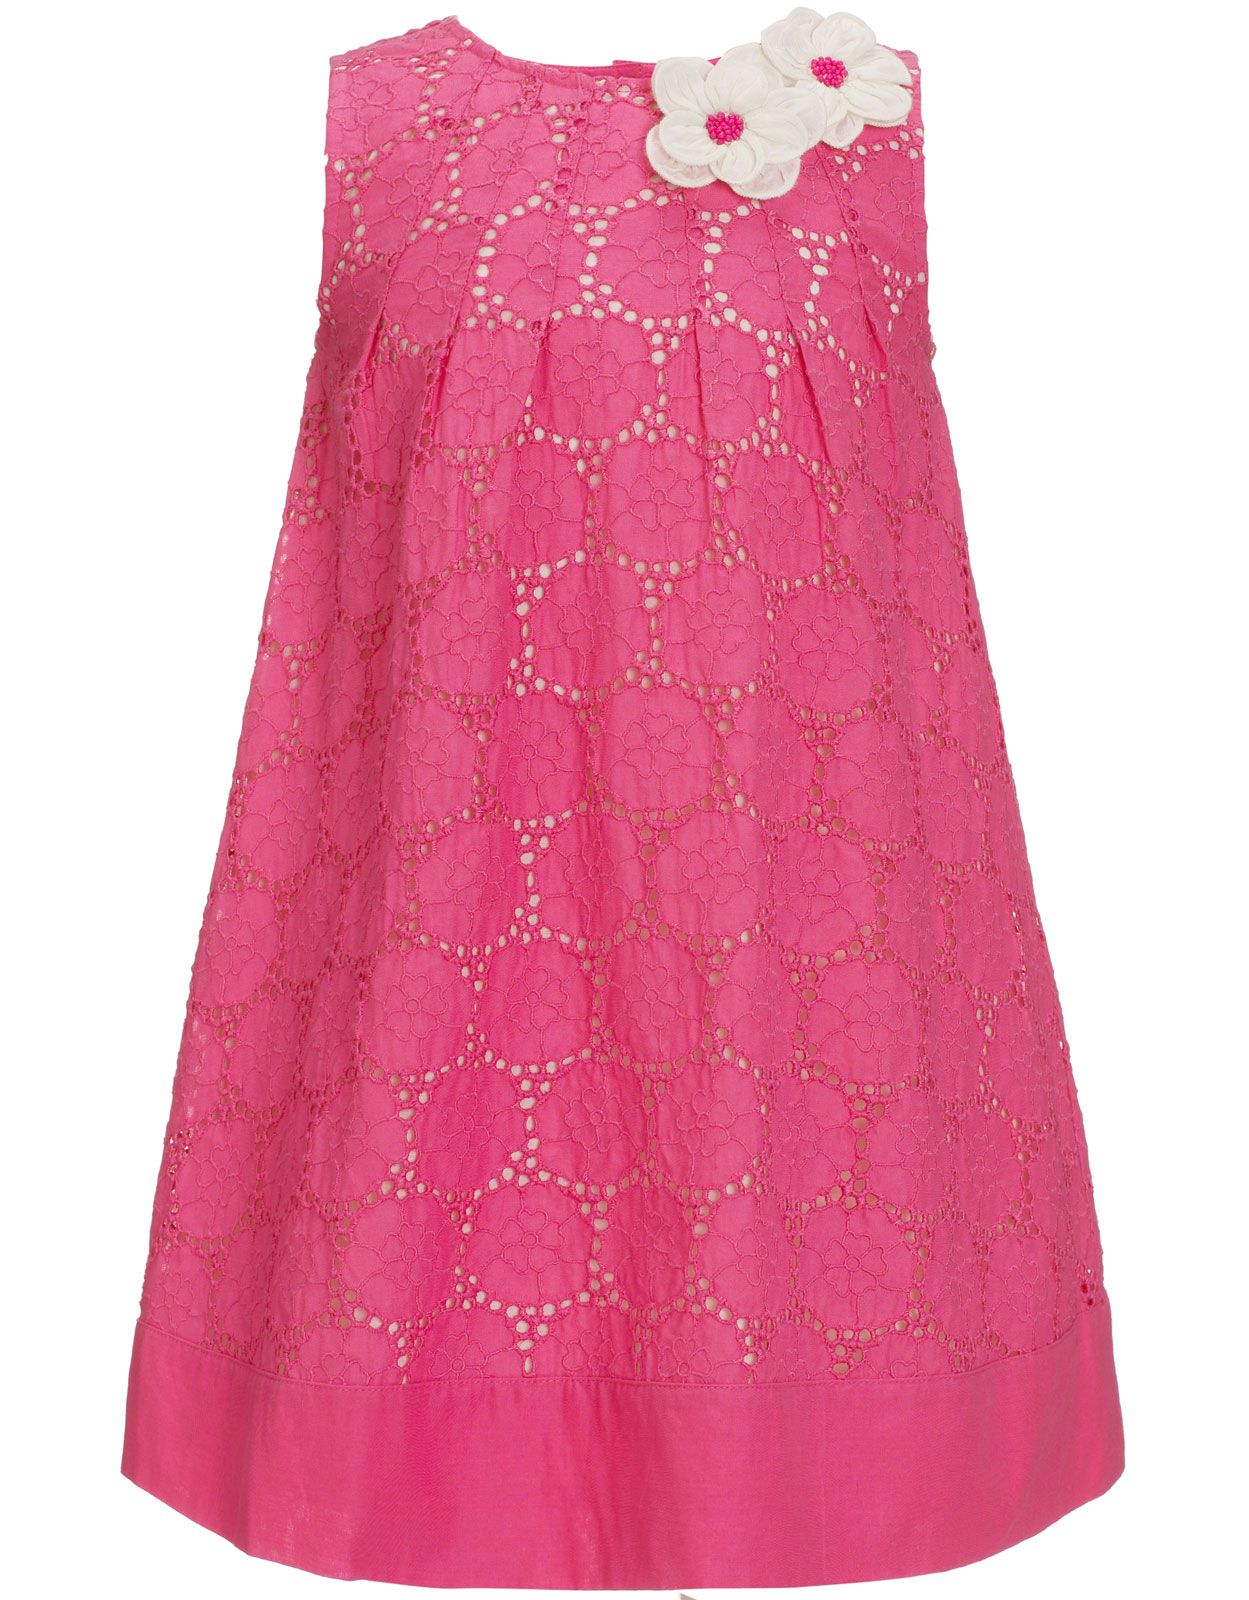 Kleid mit Stickerei | Pink | Monsoon | Moda | Pinterest | Vestidos ...